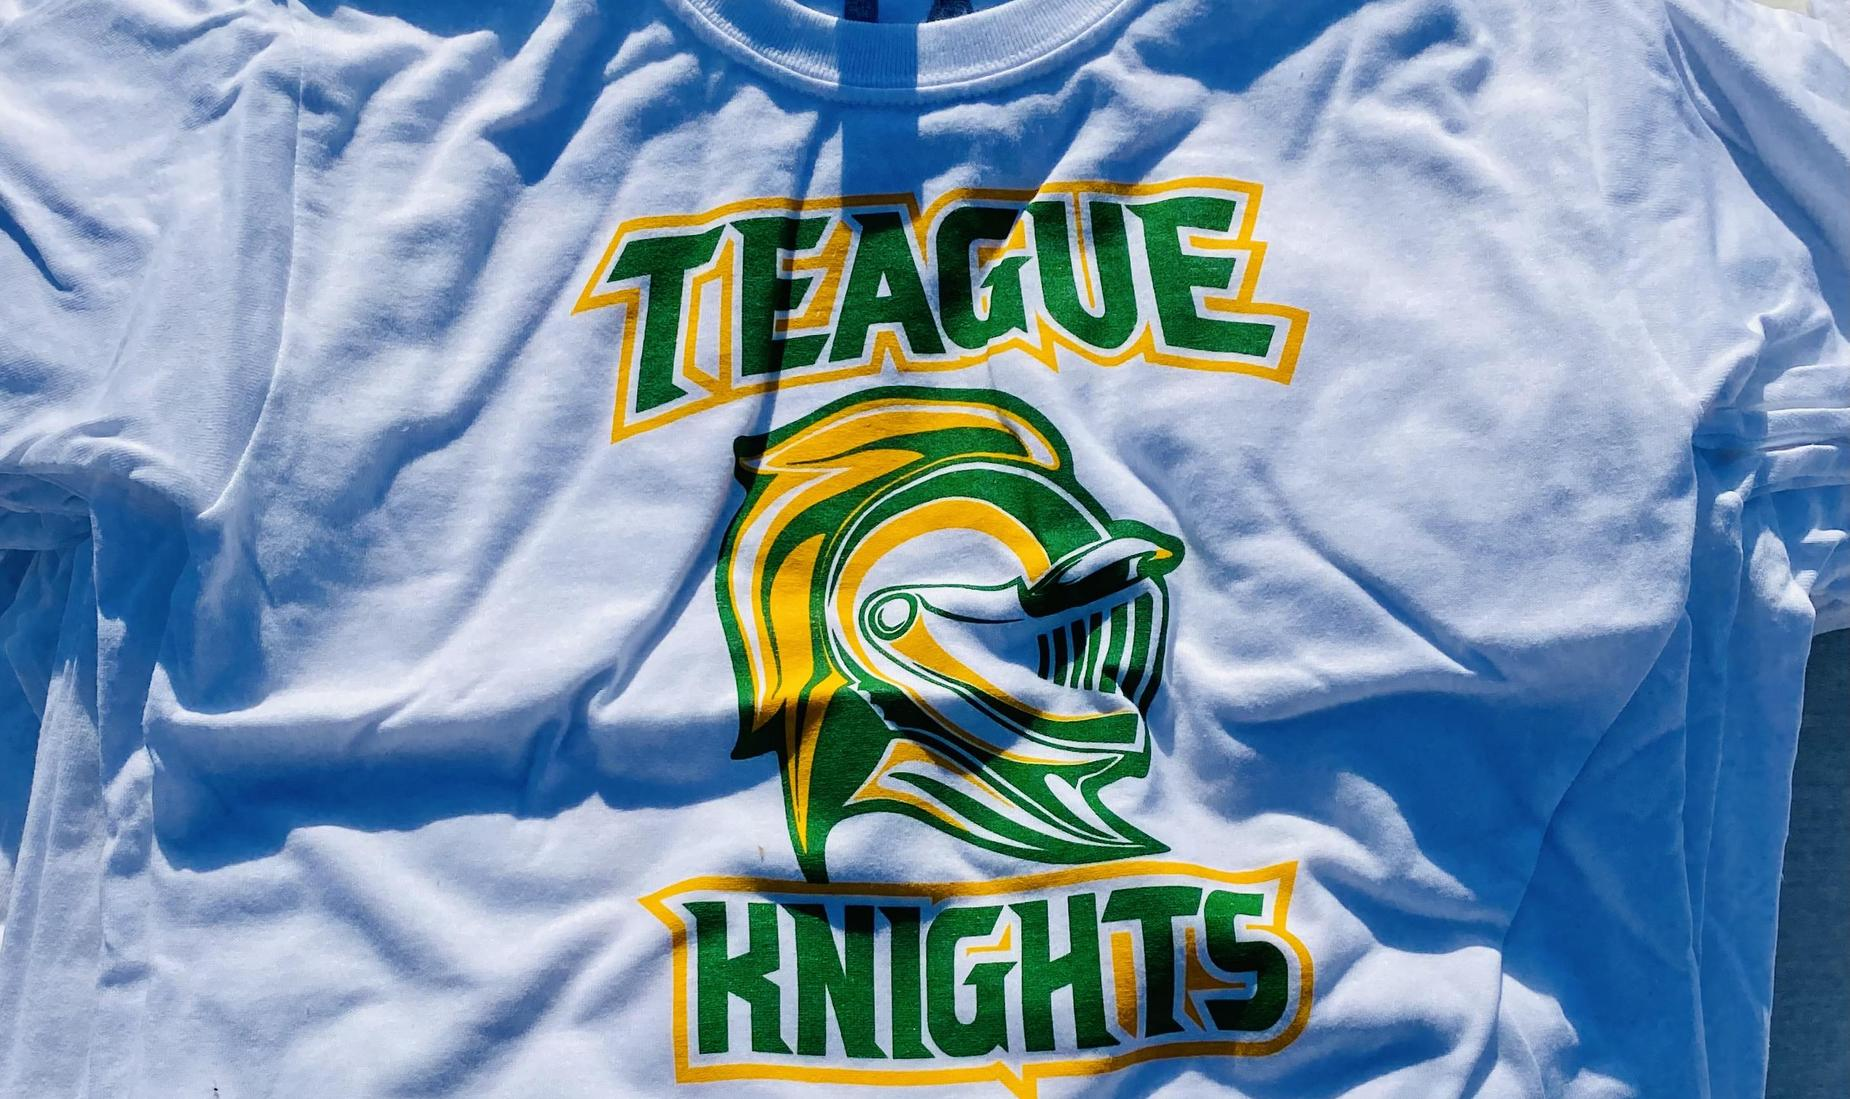 Teague Knights T-shirt